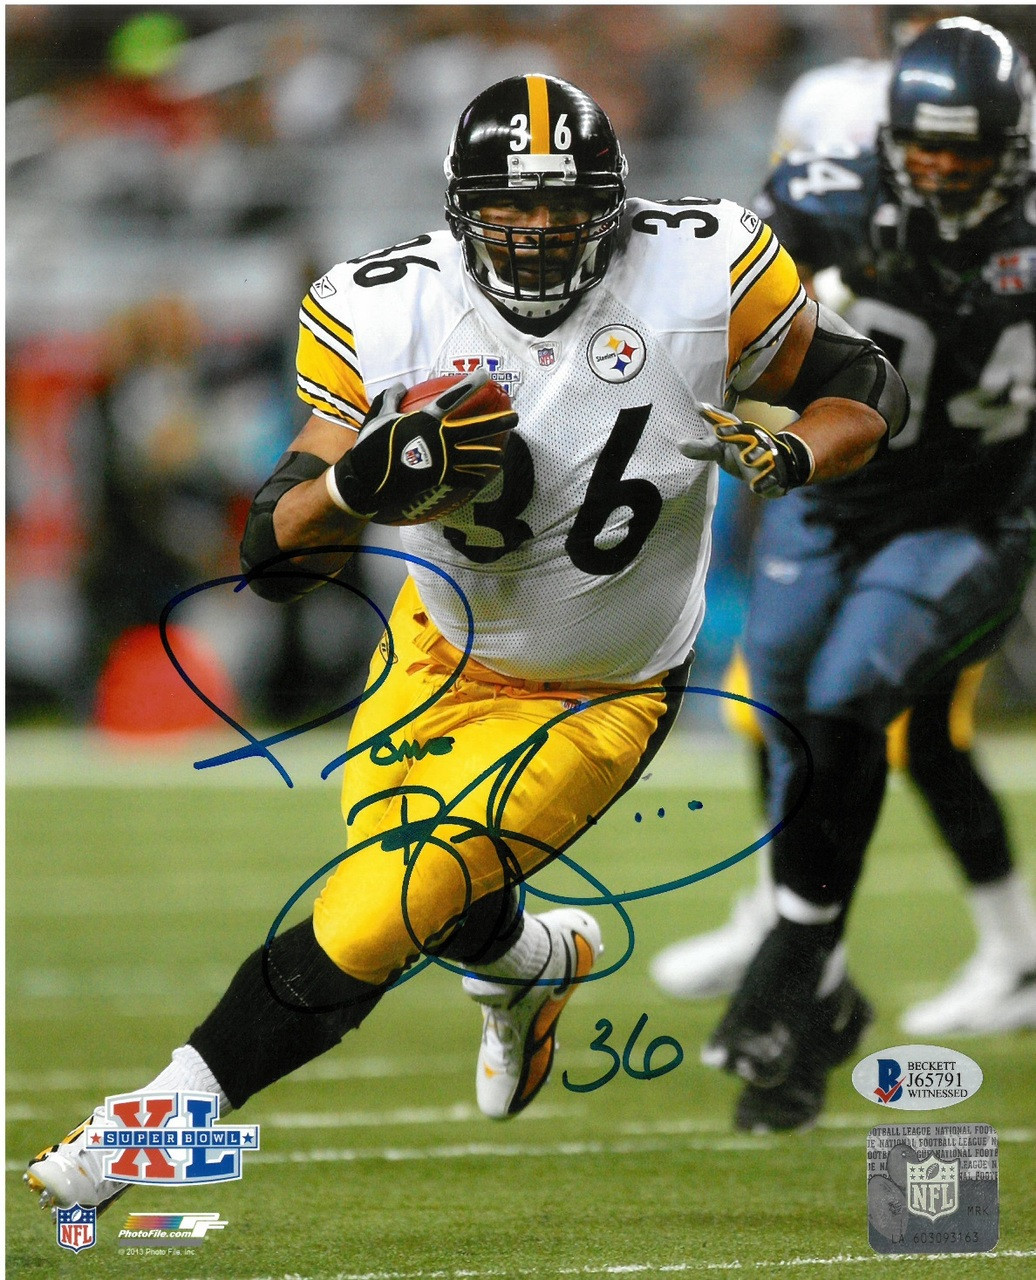 6f2791993c3 ... Jerome Bettis Autographed Pittsburgh Steelers 8x10 Photo  2. Image 1.  Loading zoom